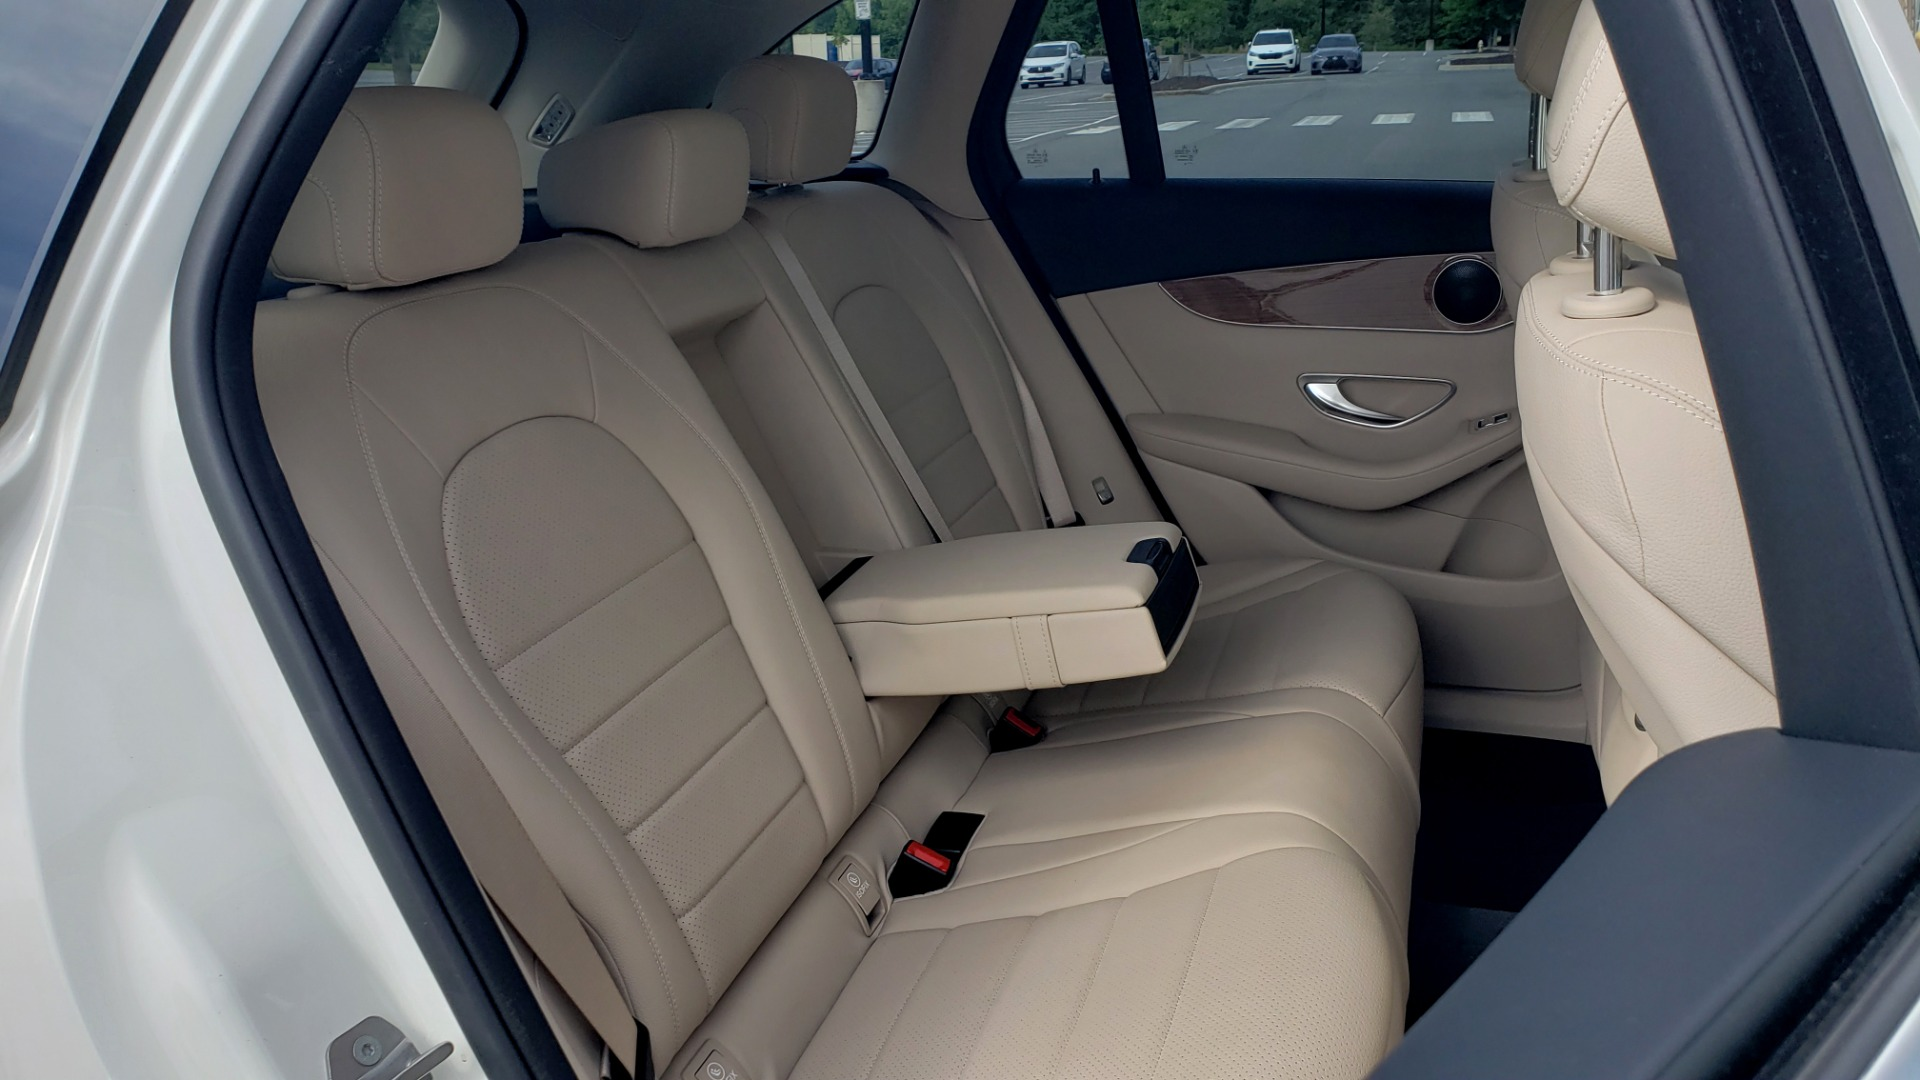 Used 2018 Mercedes-Benz GLC 300 4MATIC / PREM PKG / PANO-ROOF / APPLE / REARVIEW for sale $33,397 at Formula Imports in Charlotte NC 28227 67